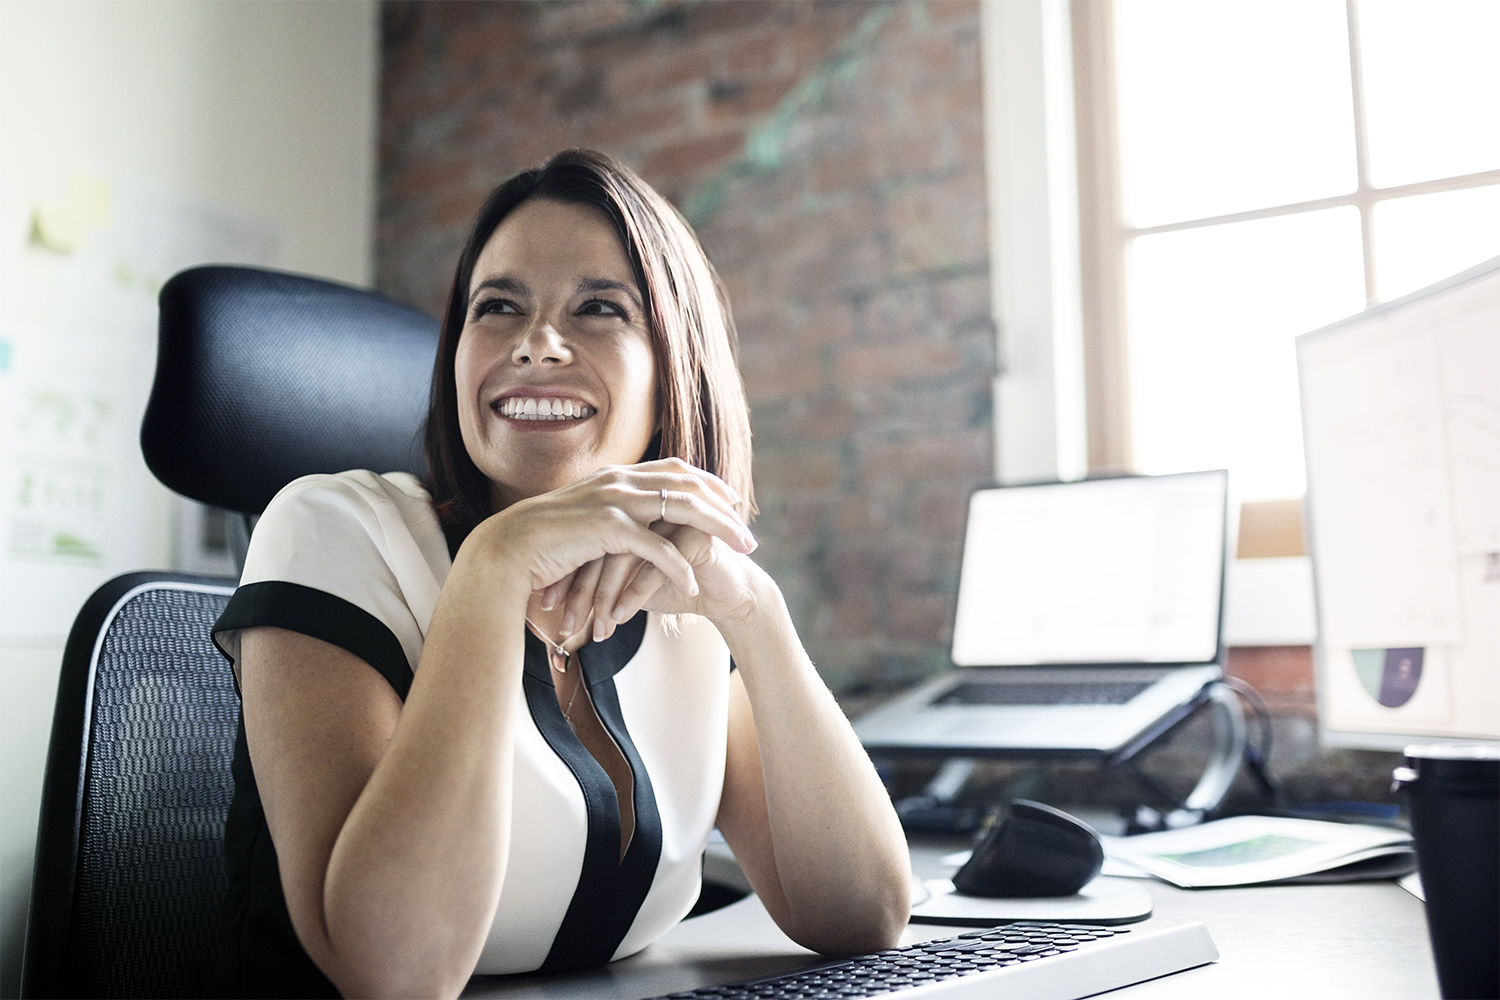 Smiling businesswoman at office desk